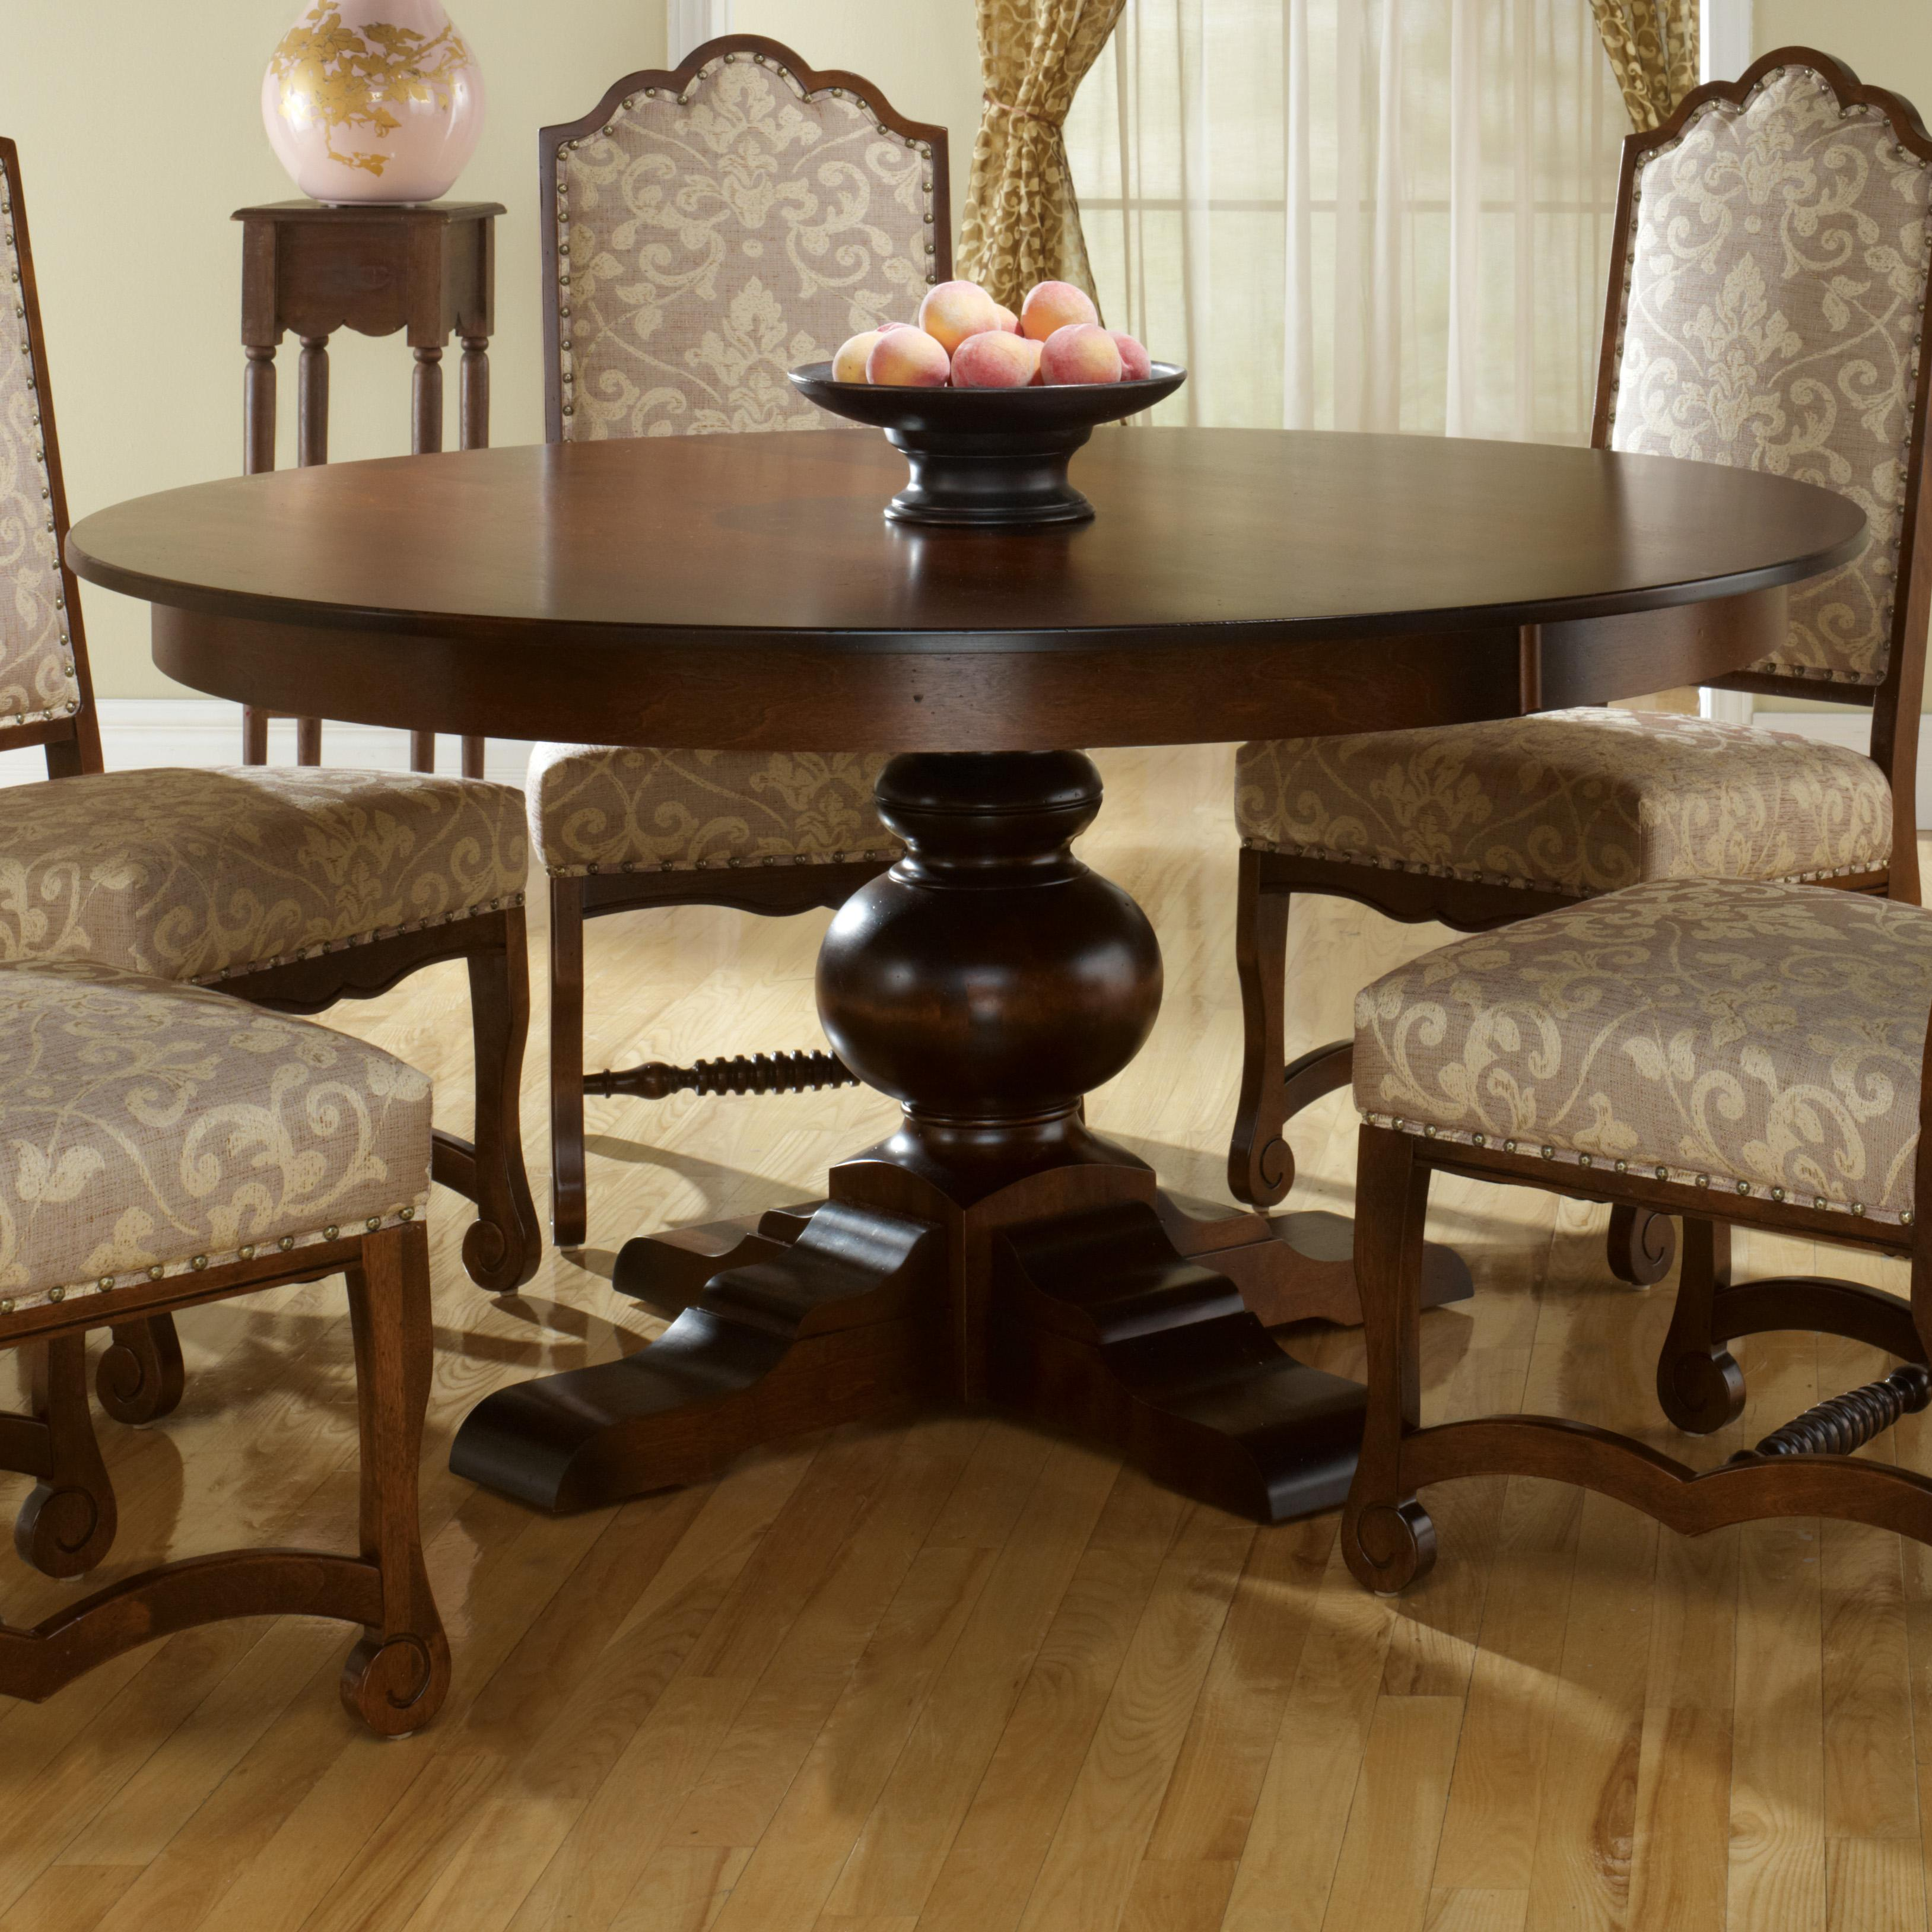 Custom Kitchen Tables: Canadel Custom Dining TRN060602727AXTDF Customizable Round